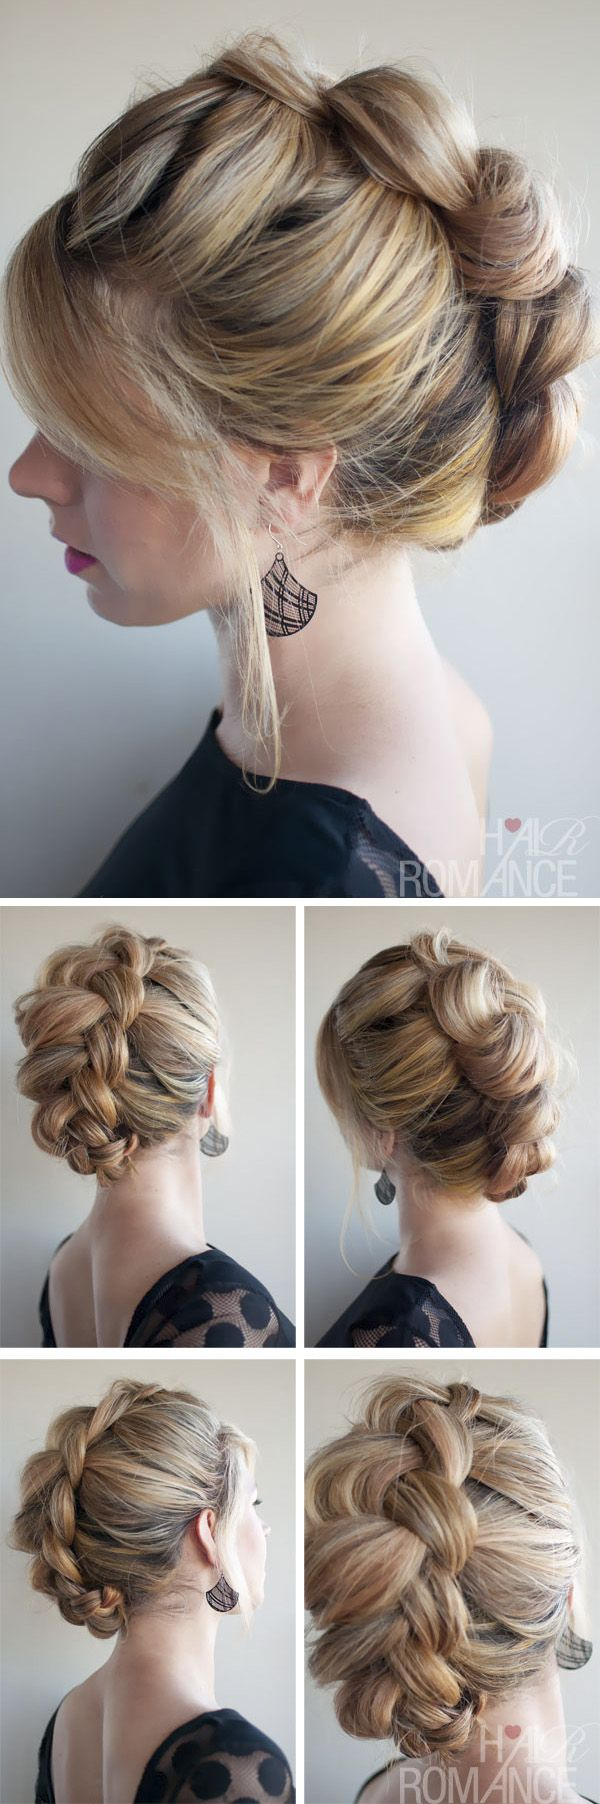 25 unique chic hairstyles ideas on pinterest bridesmaid braided a collection of 20 chic hairstyles for all occasions elegant braid hawk hairstyle pmusecretfo Gallery